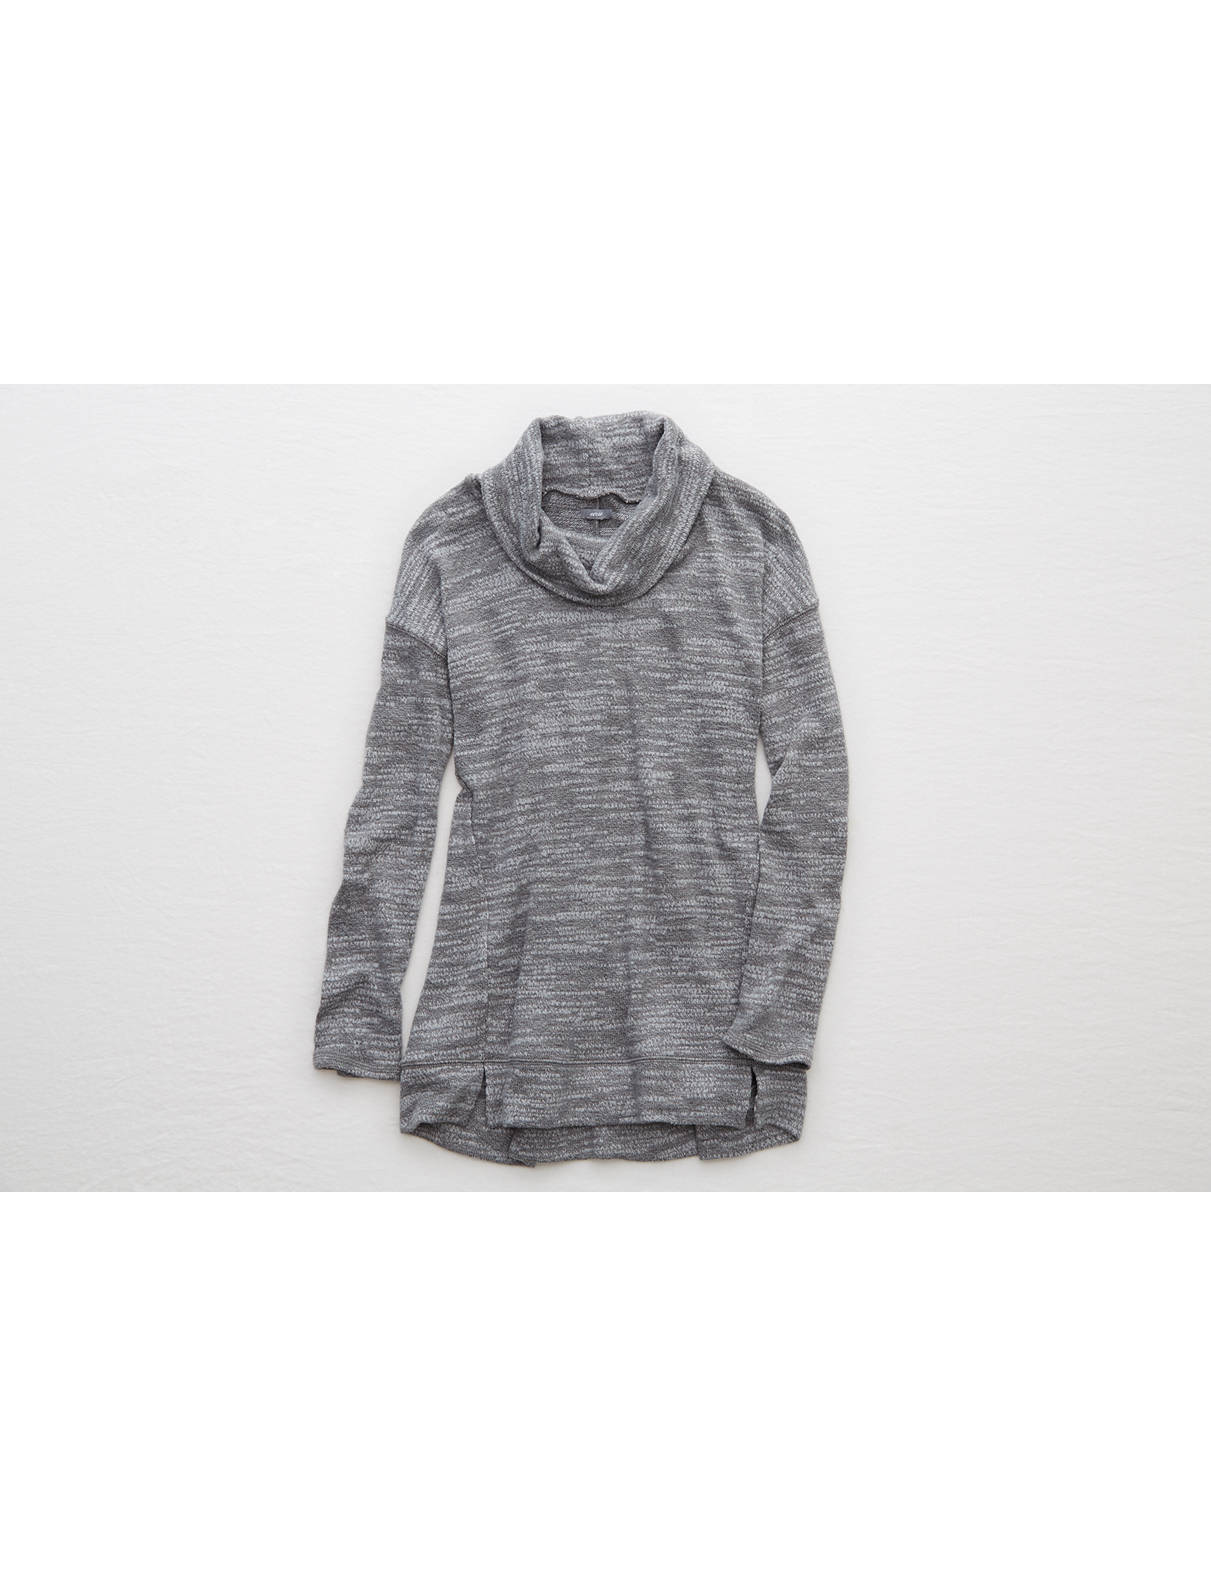 Aerie Real Soft Cowl Neck Sweatshirt